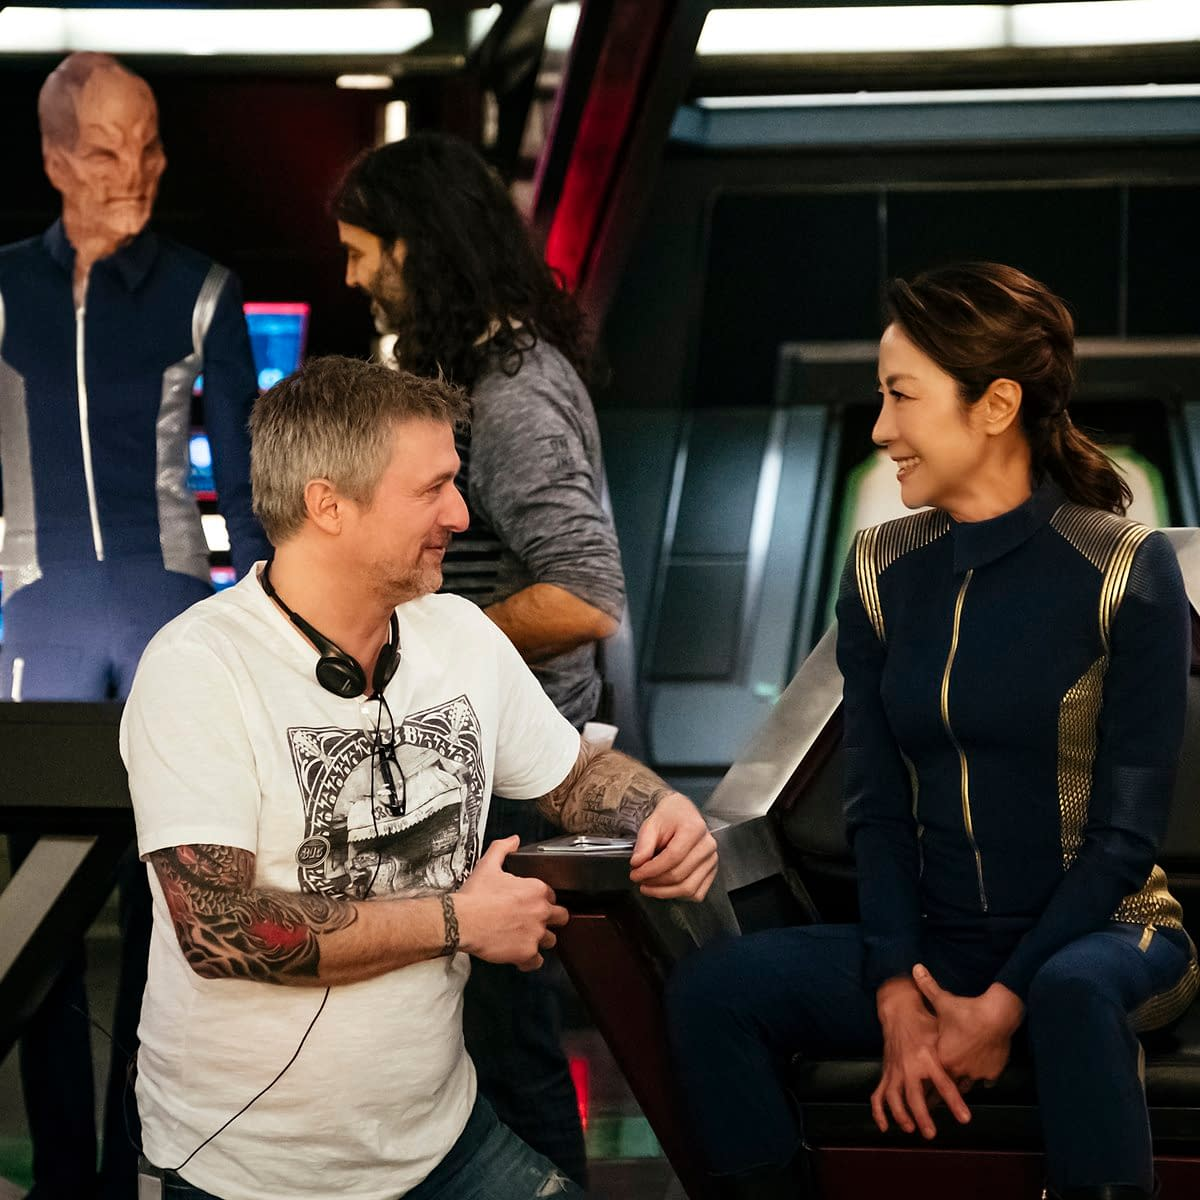 'Star Trek: Discovery' Shares 4 BTS Photos for World Photography Day